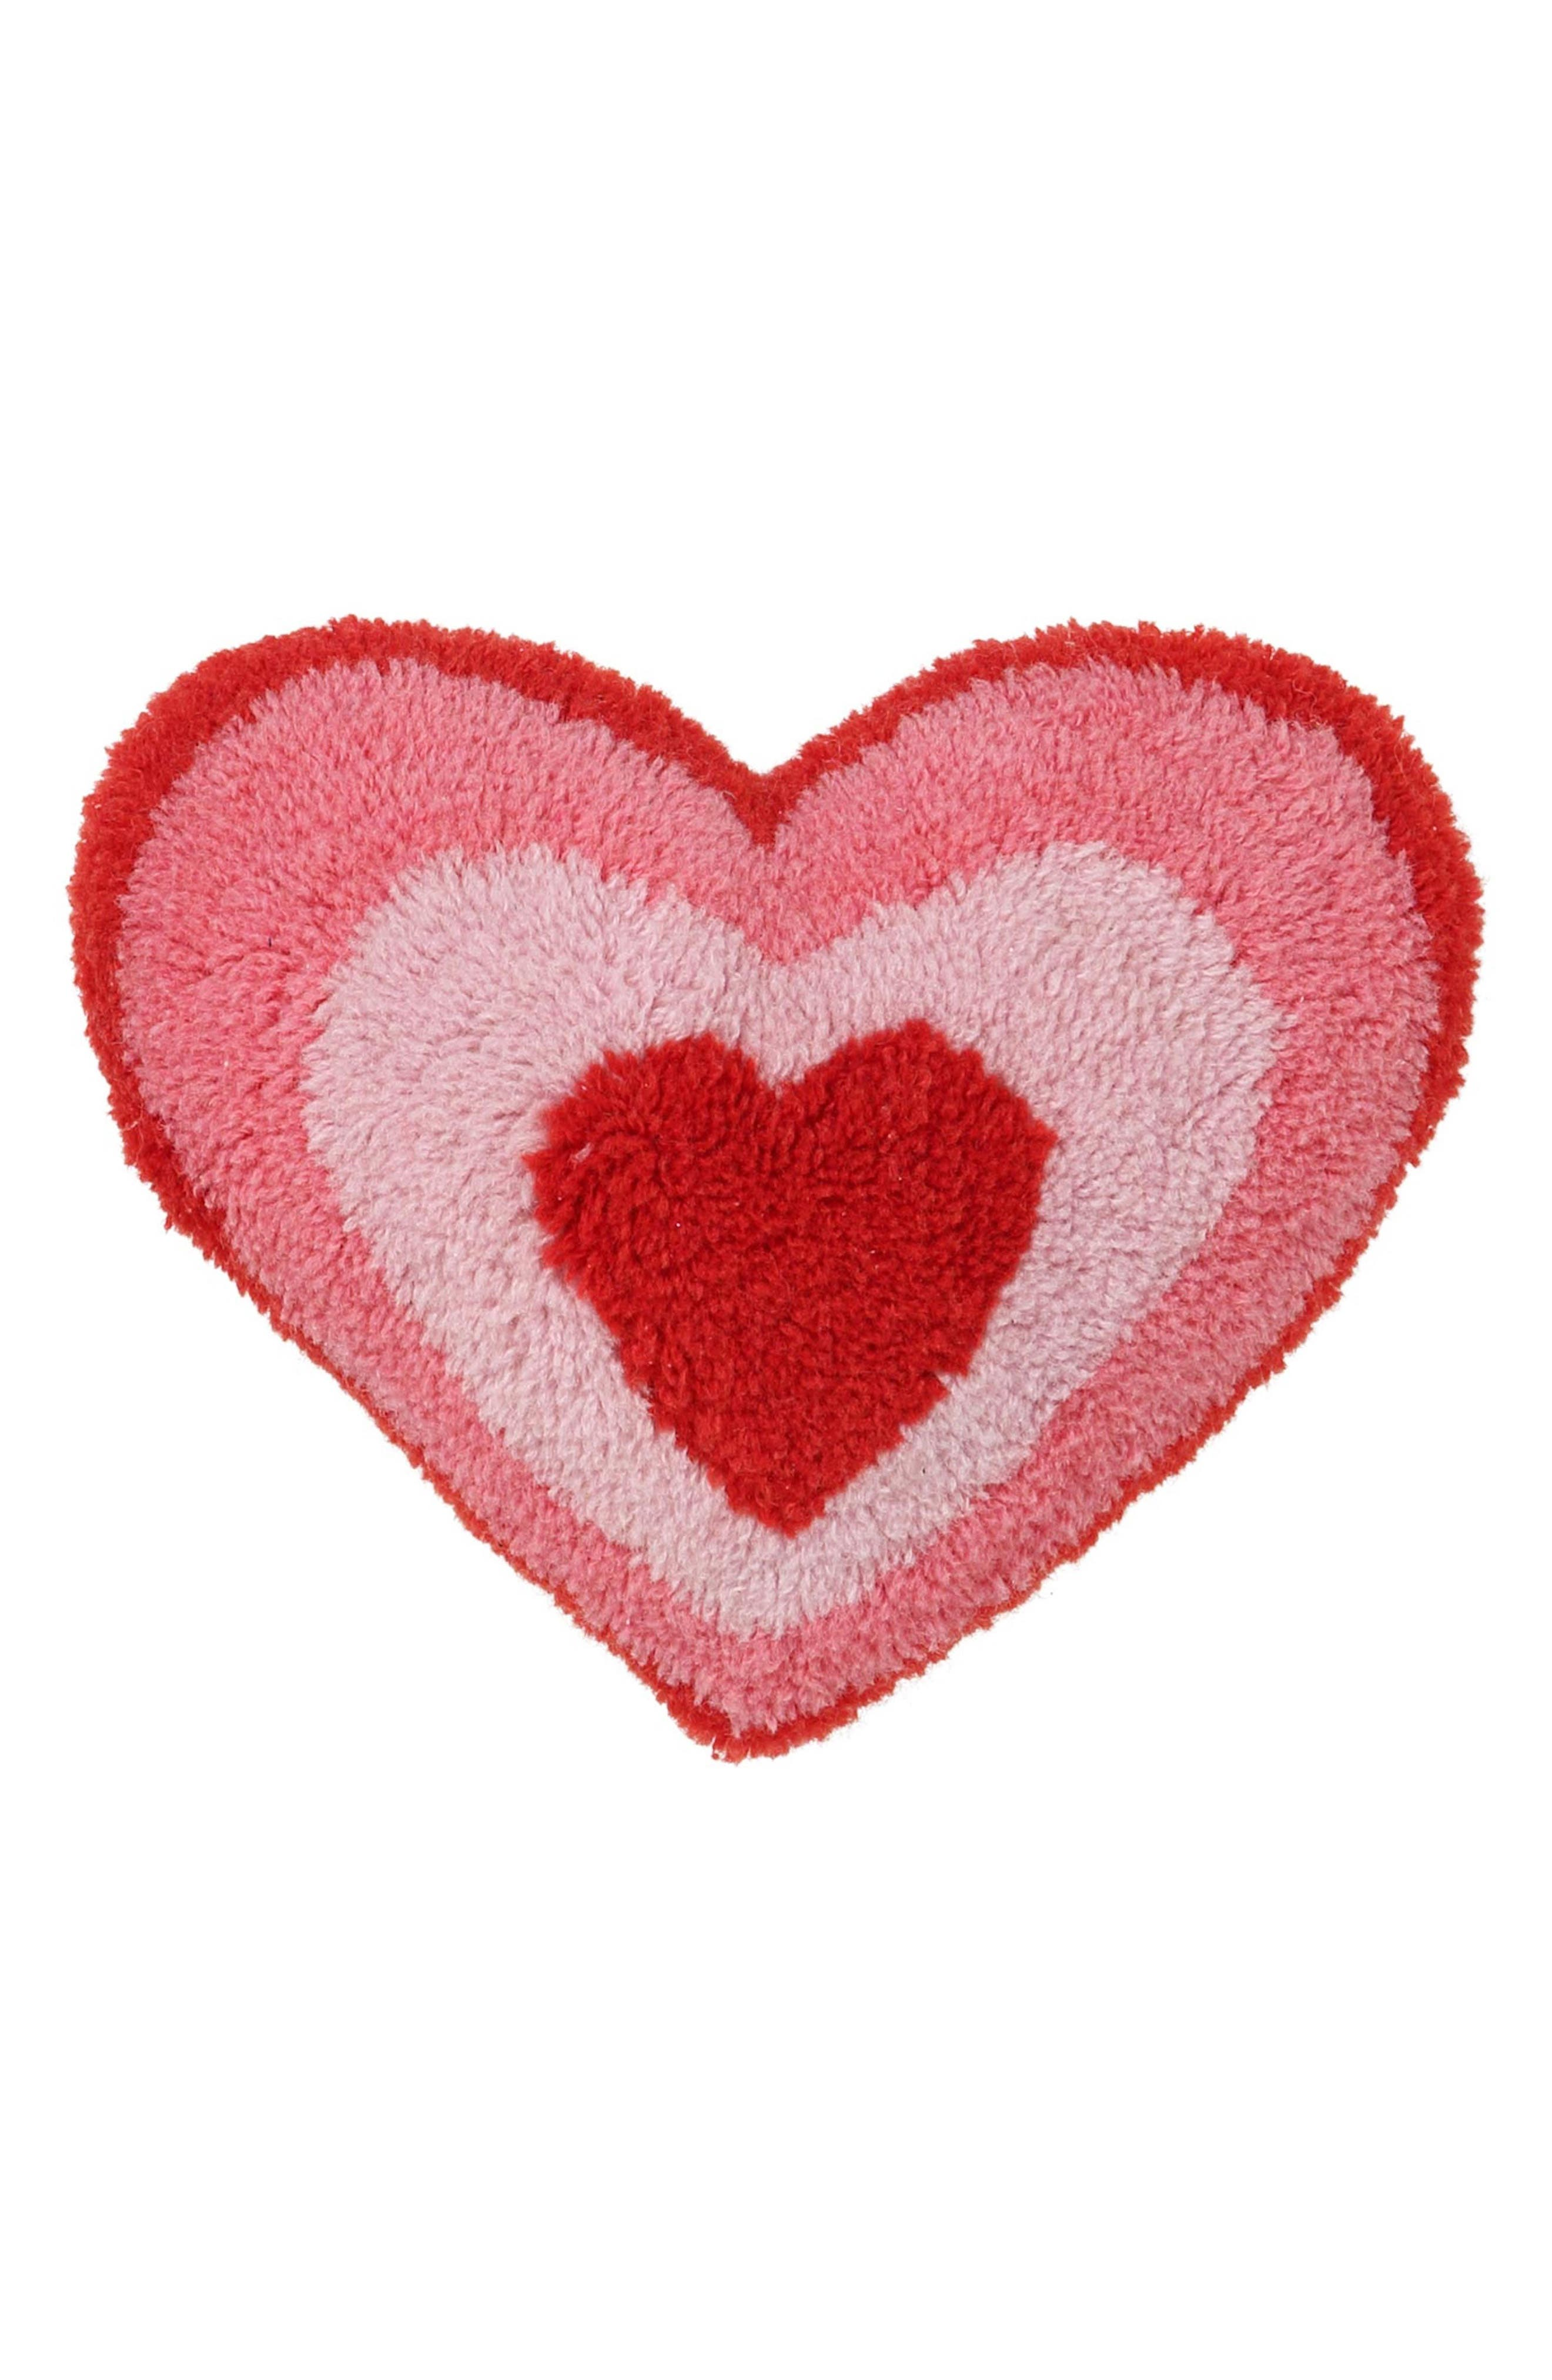 Lover Heart Accent Pillow,                             Main thumbnail 1, color,                             650